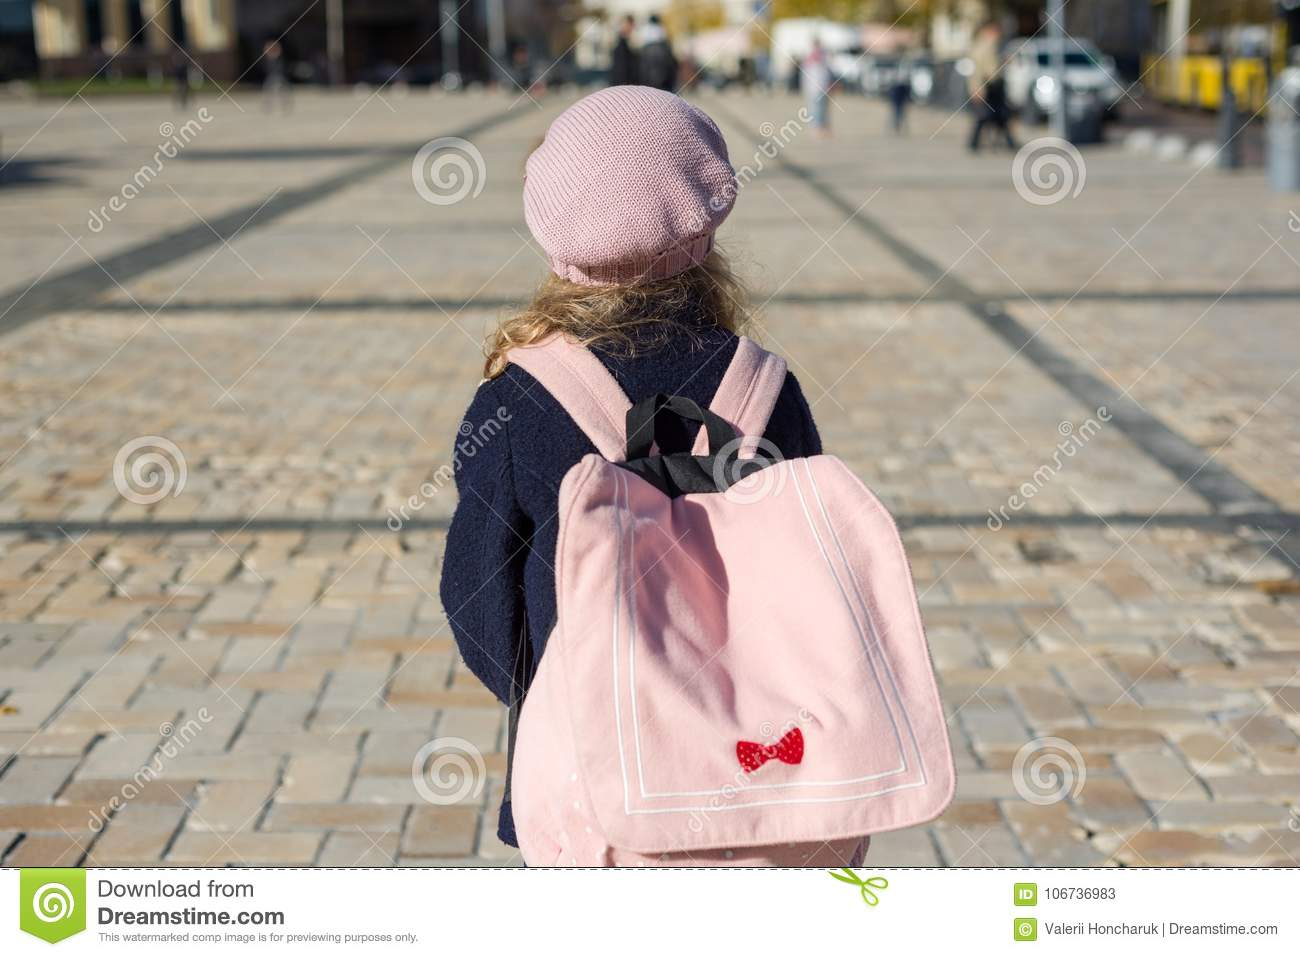 1d8347edae Stylish Little Girl With A Backpack